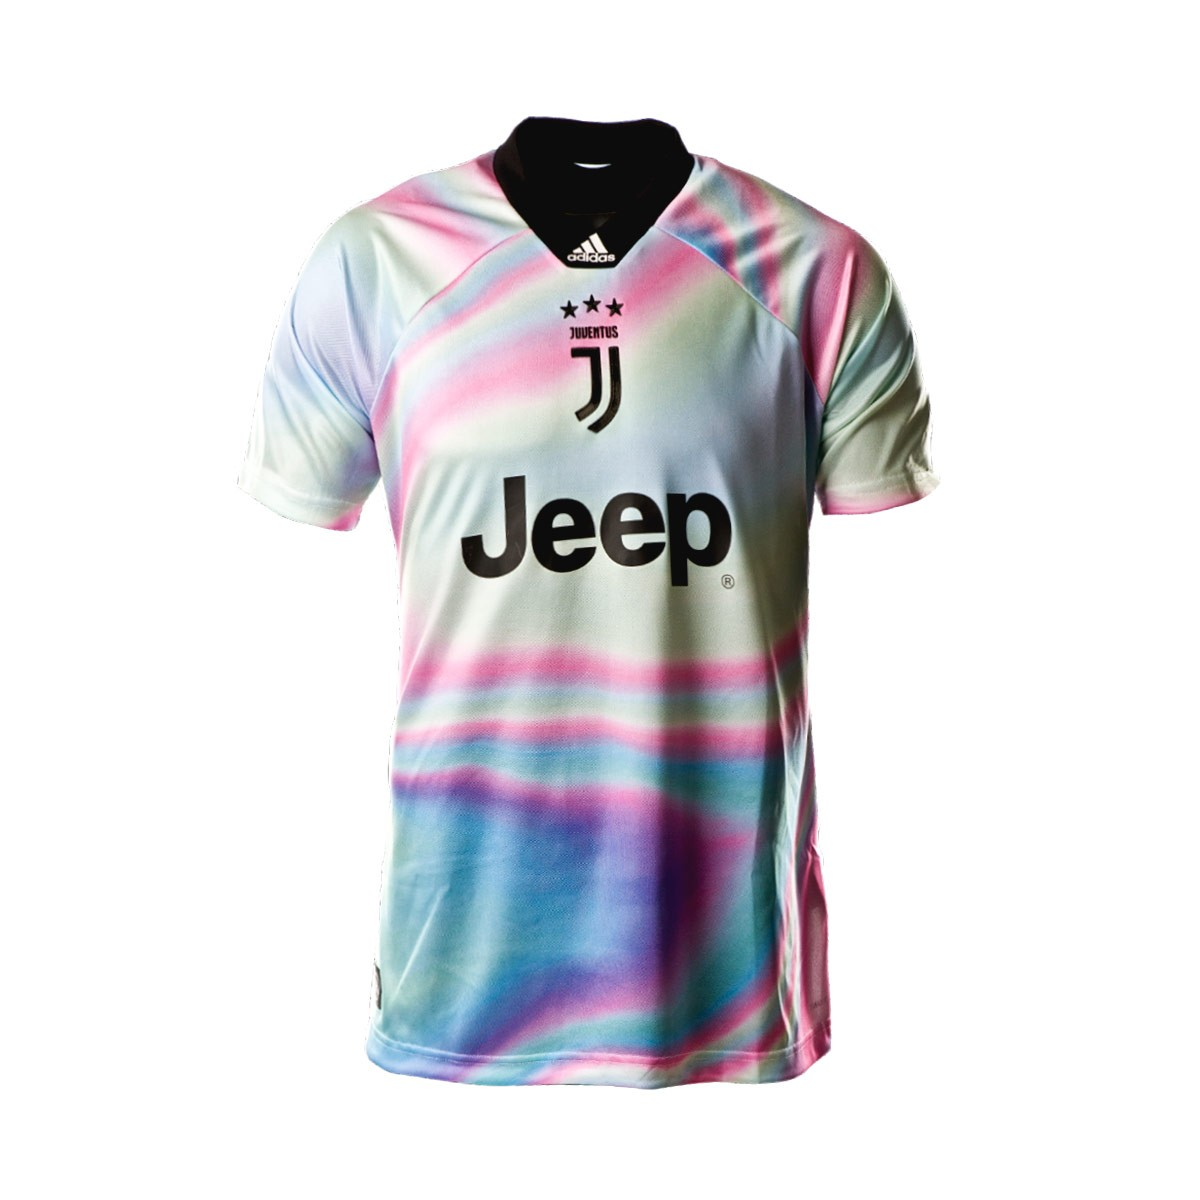 c21e283f40c Jersey adidas Juventus EA 2018-2019 Multicolor-Black - Football ...